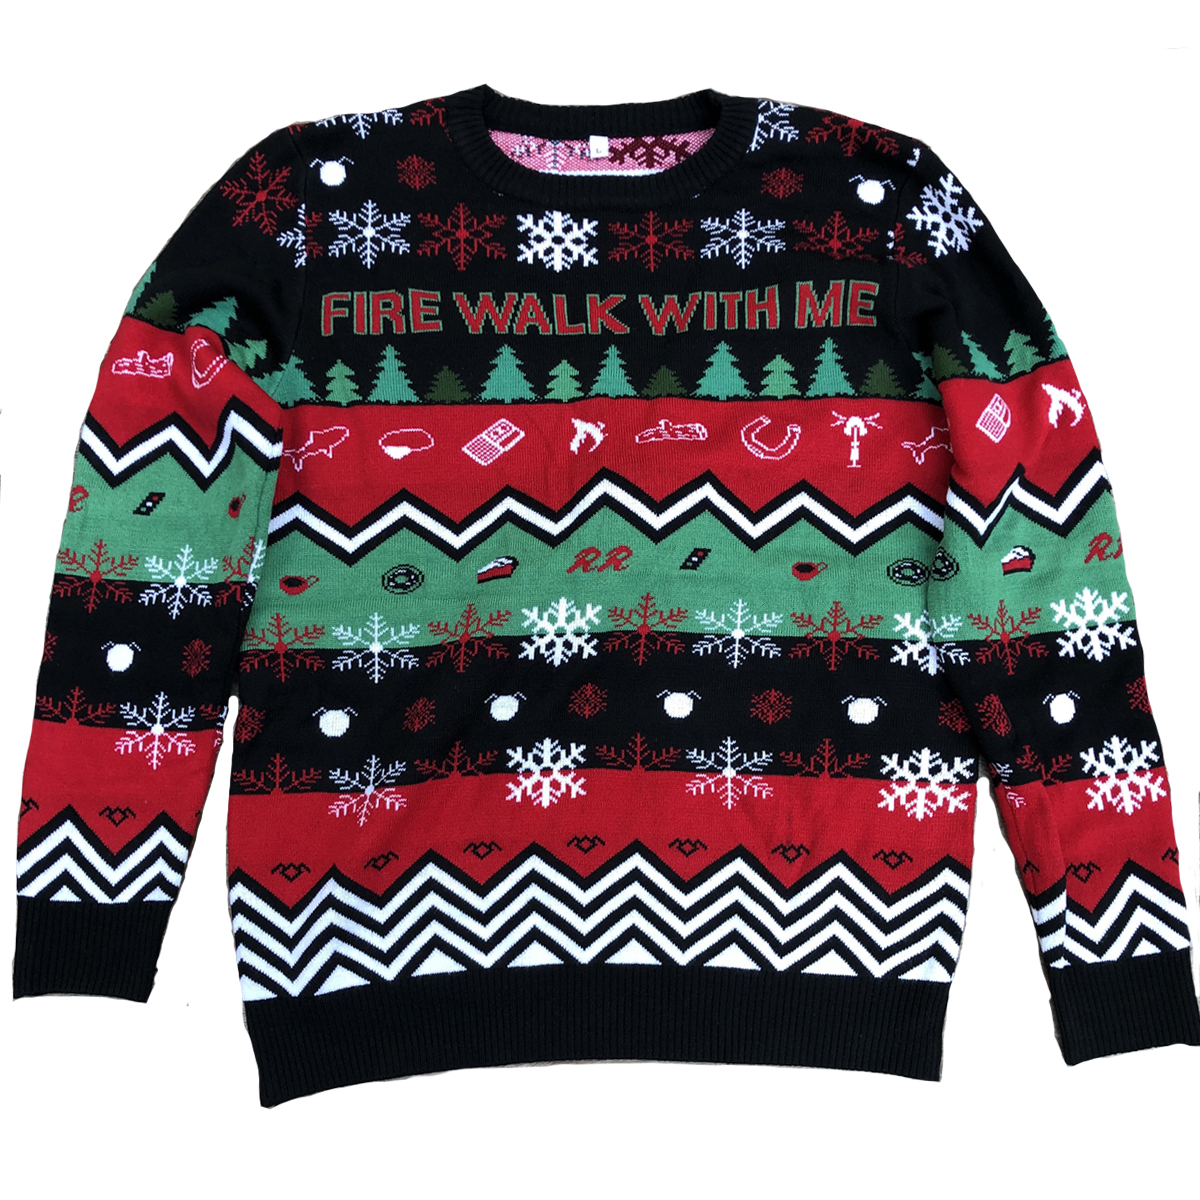 Twin Peaks Fire Walk With Me Holiday Sweater